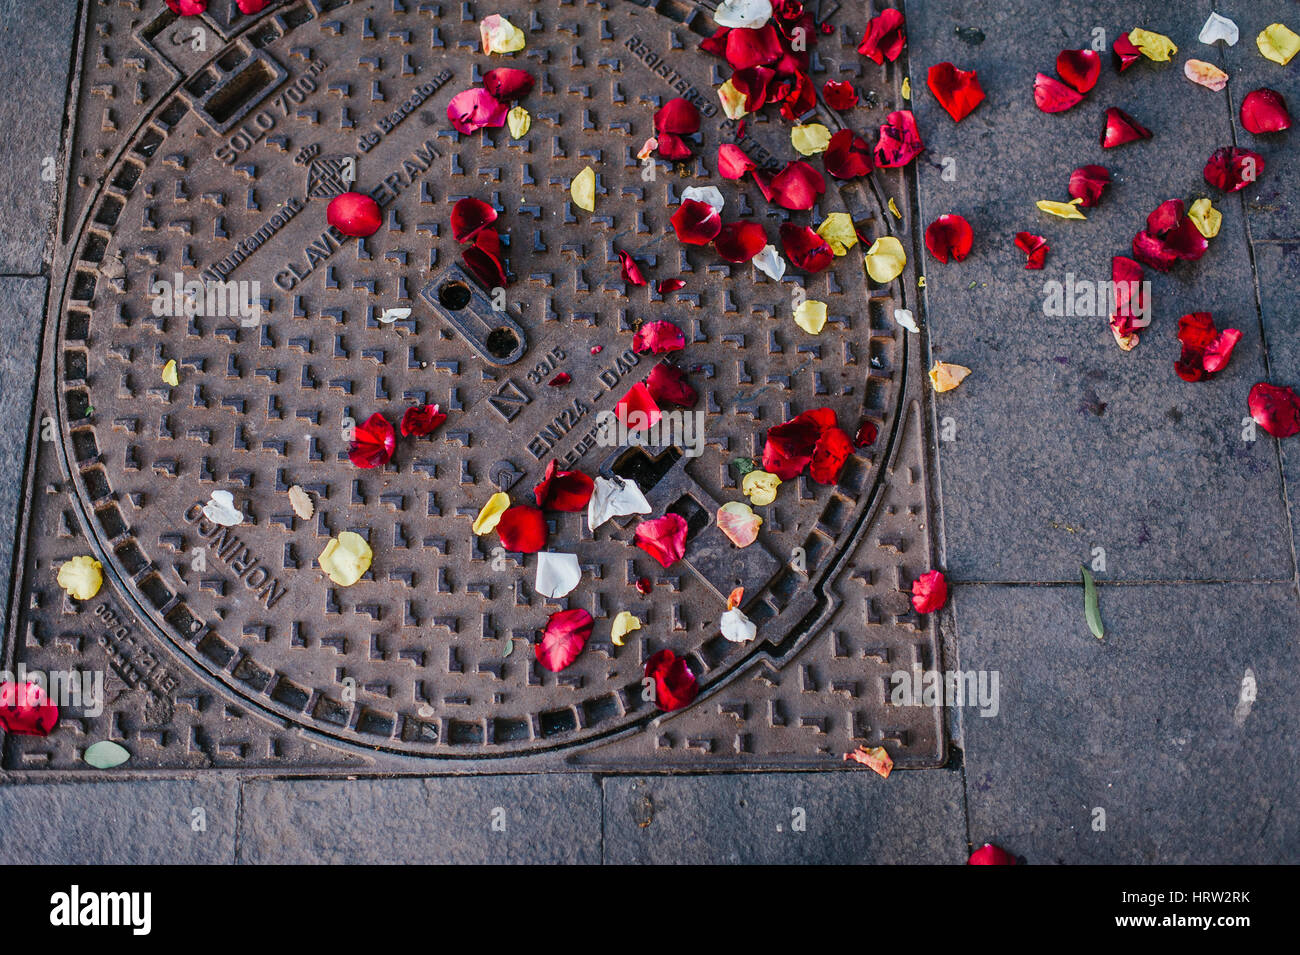 Rose petals thrown on a street in Barcelona Spain Stock Photo